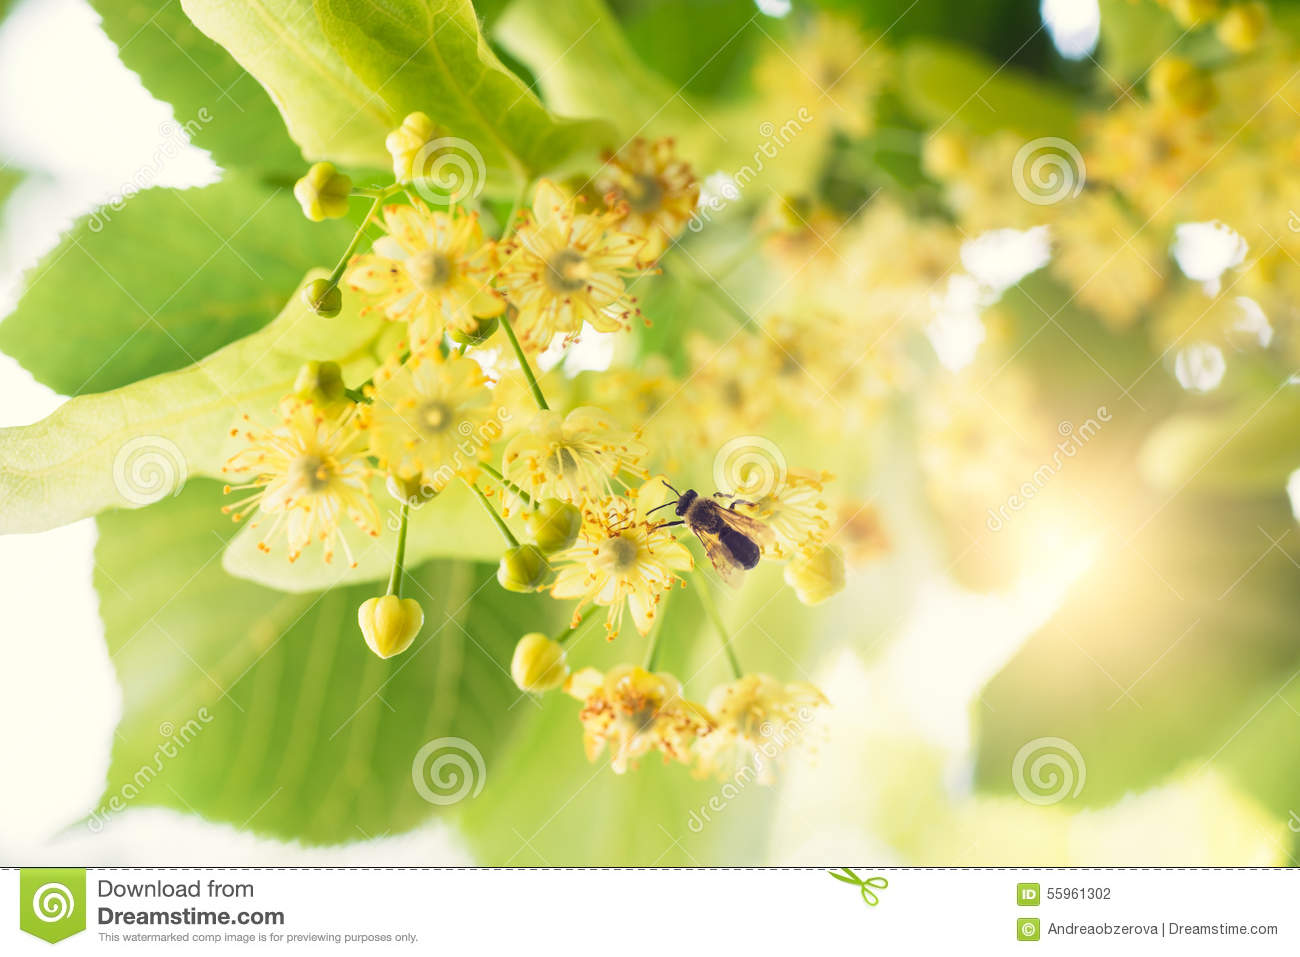 Blooming linden, lime tree in bloom with bees